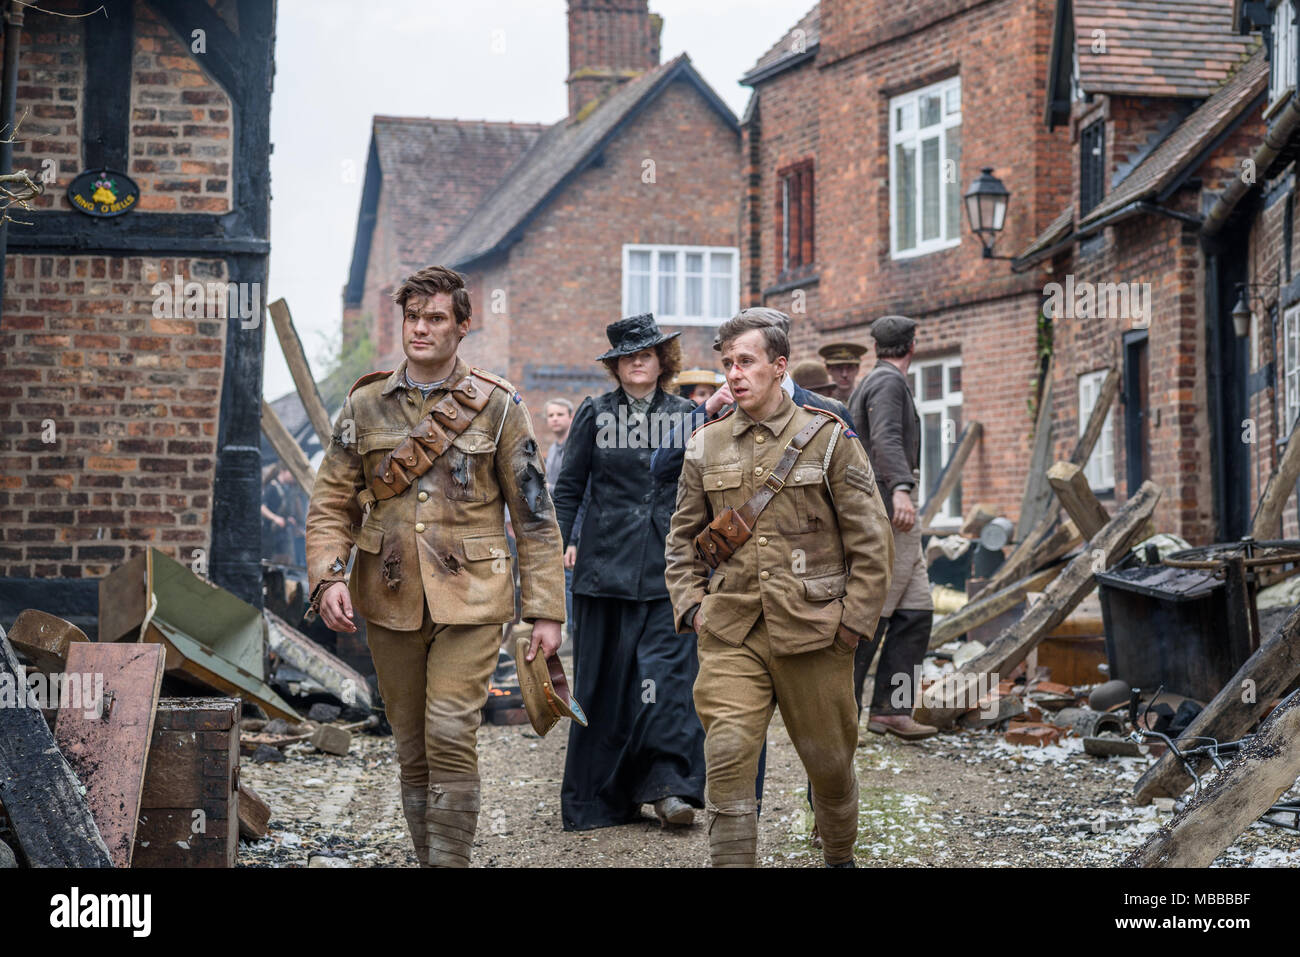 Image result for BBC war of the worlds